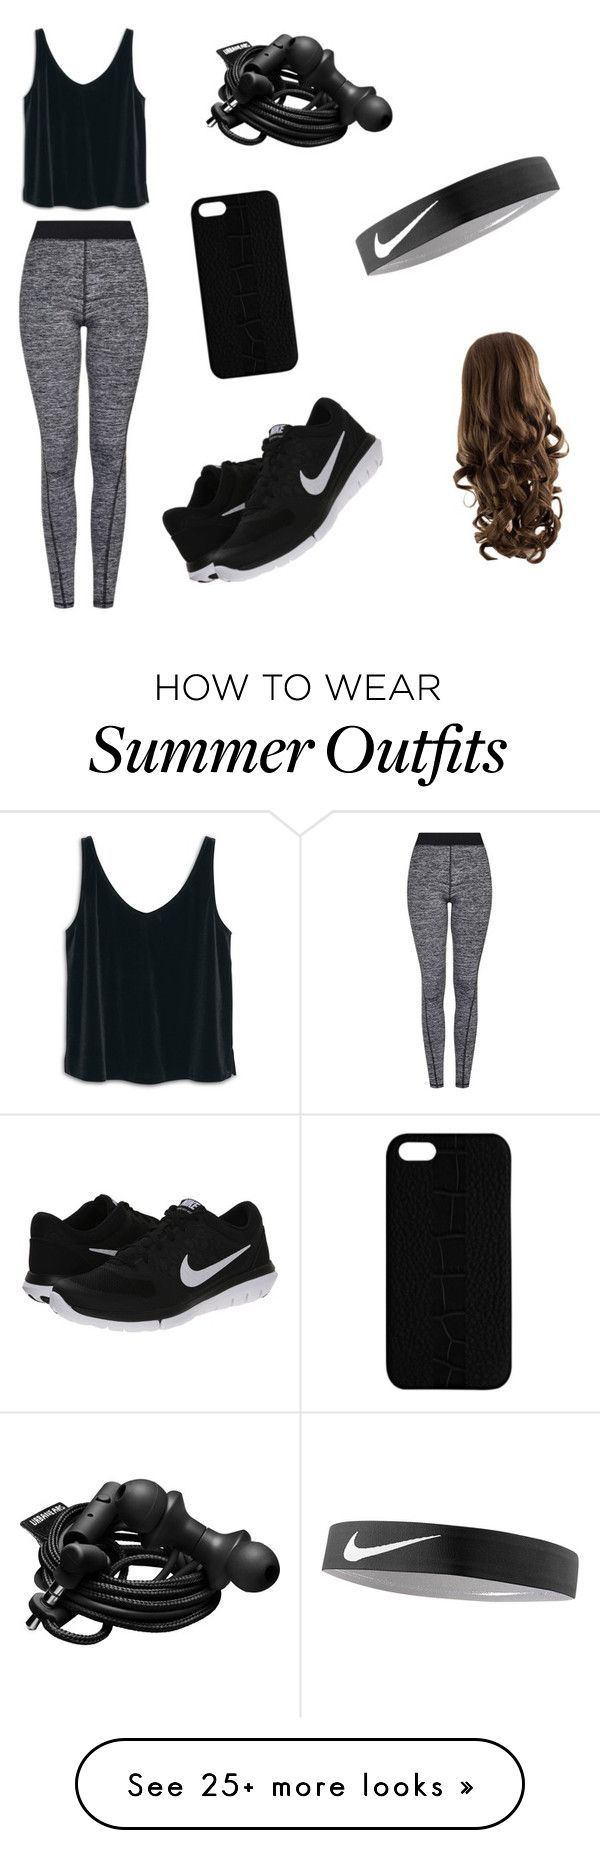 nike shoes Summer workout outfit by minnie-2012 on Polyvore featuring moda, Topshop, MANGO, NIKE, Maison Takuya y Urbanears